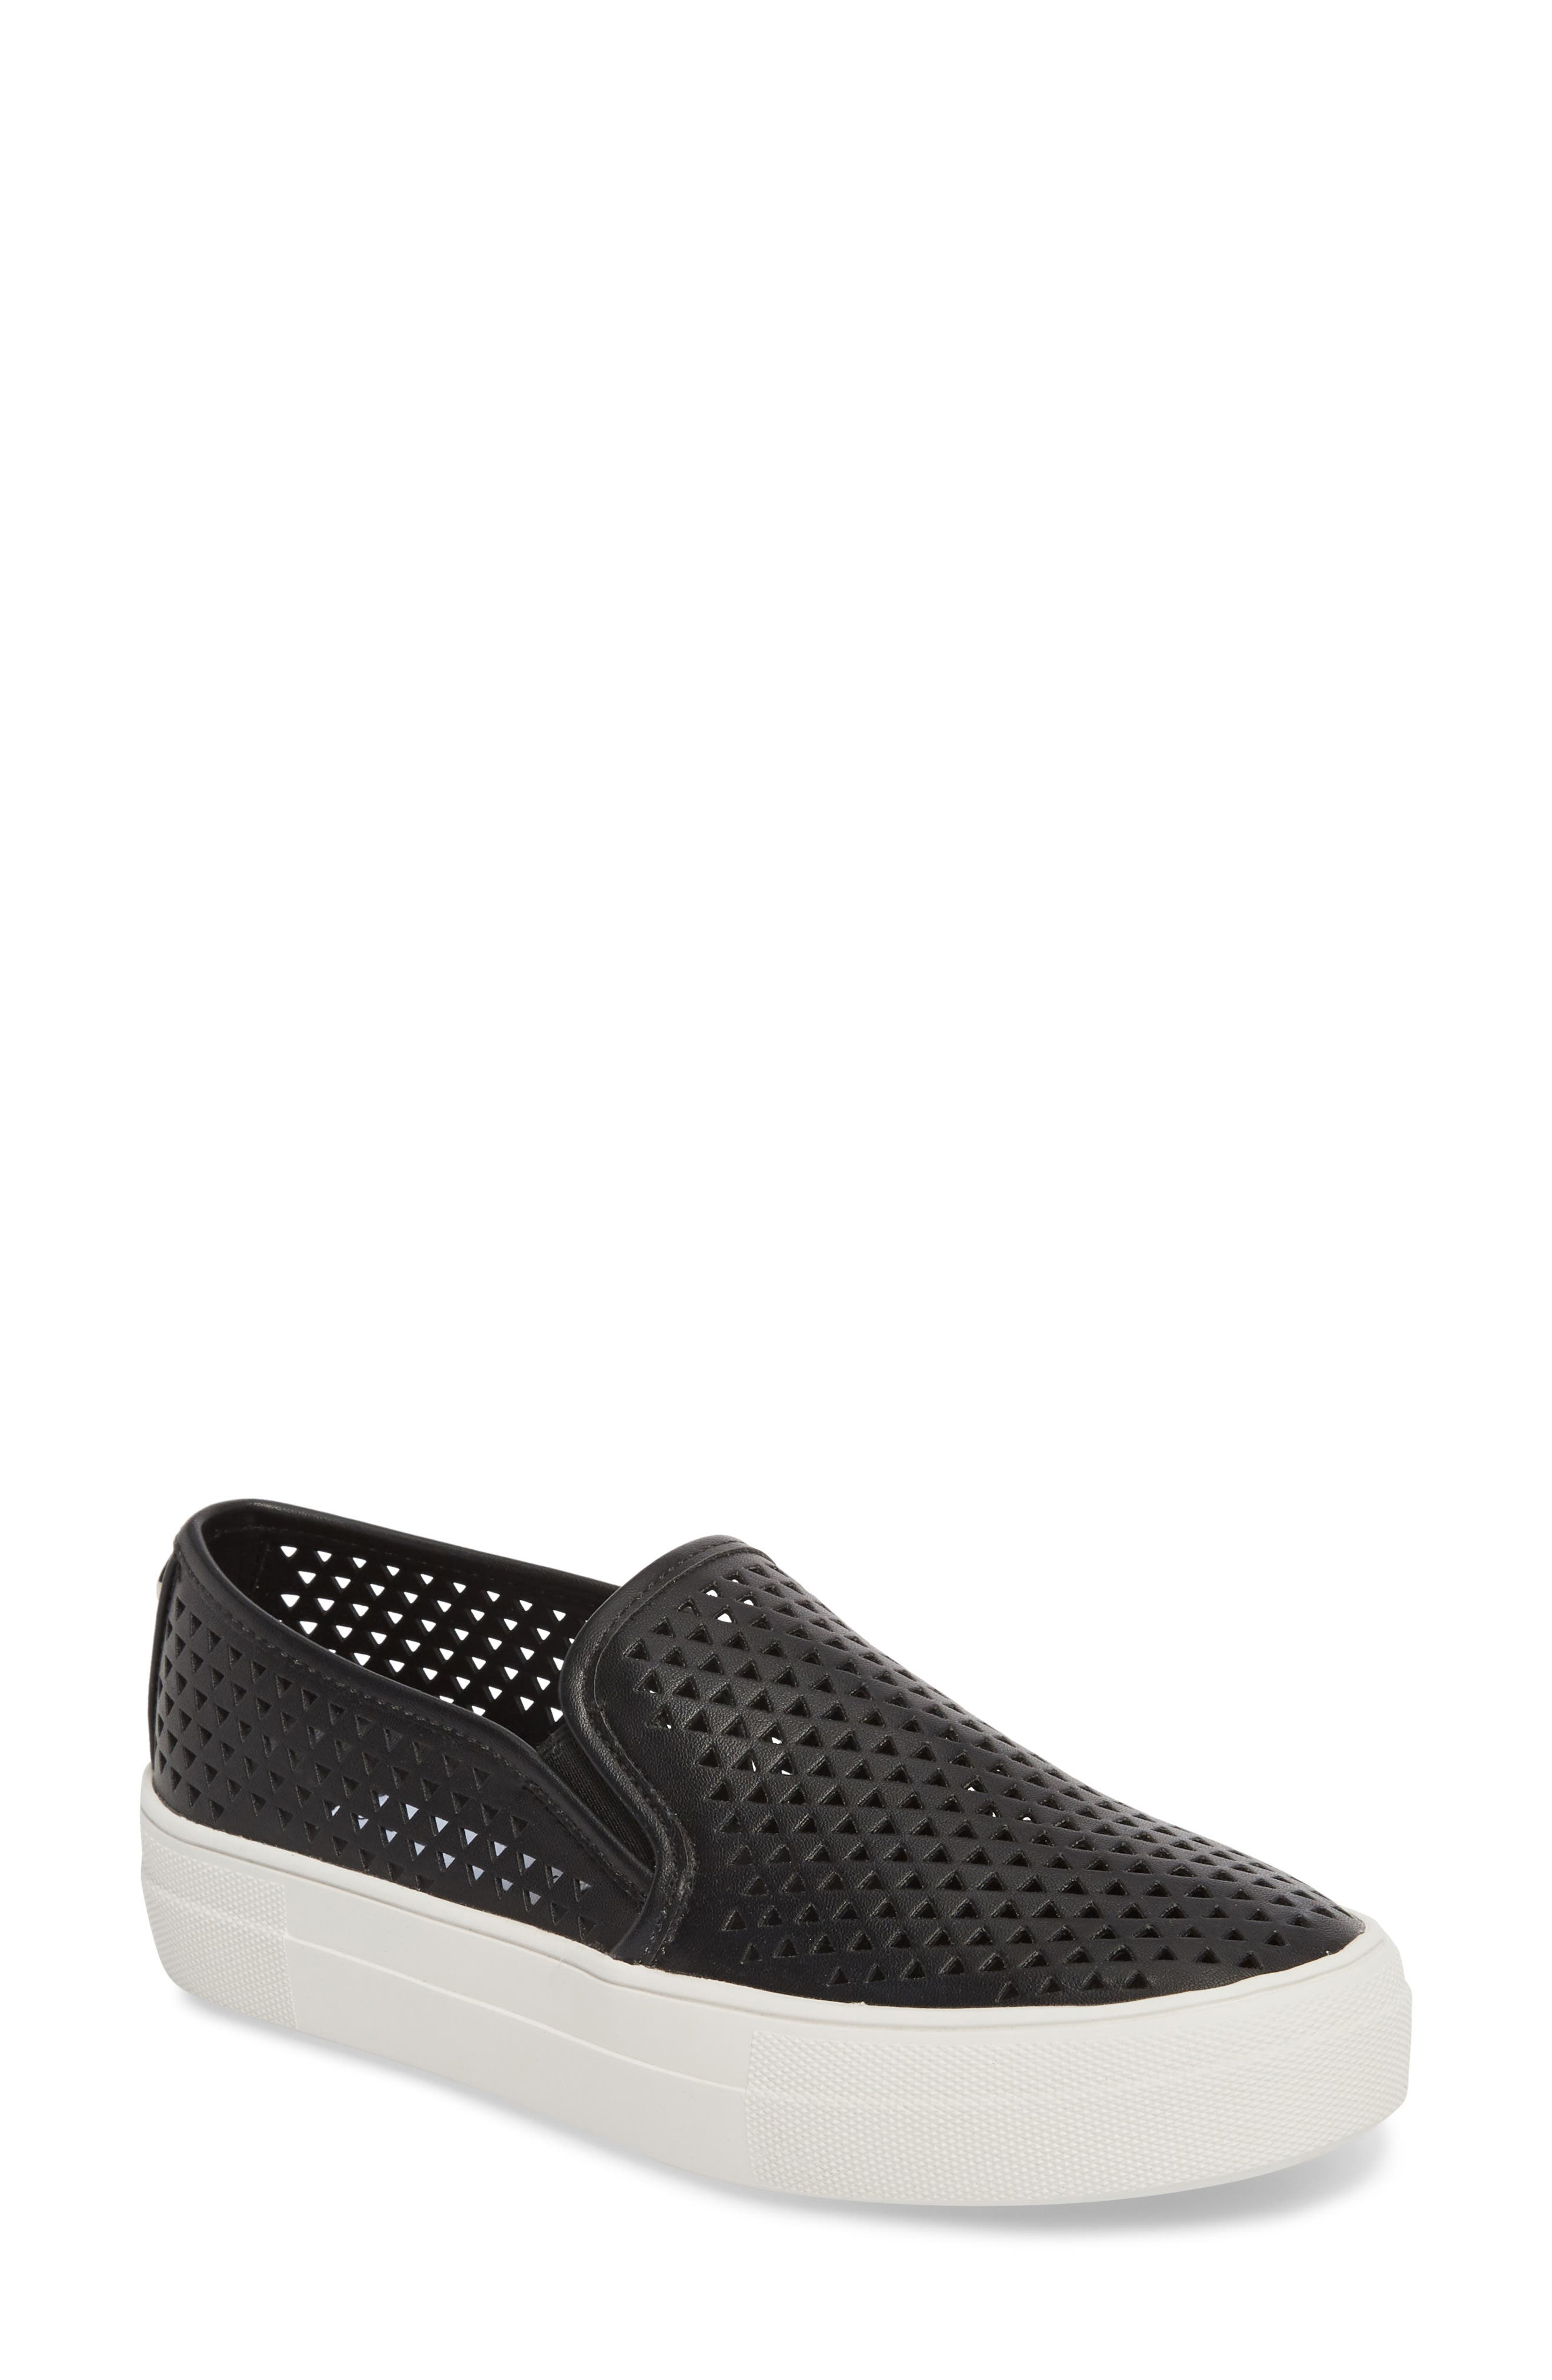 Gal-P Perforated Slip-On Sneaker,                         Main,                         color, 001